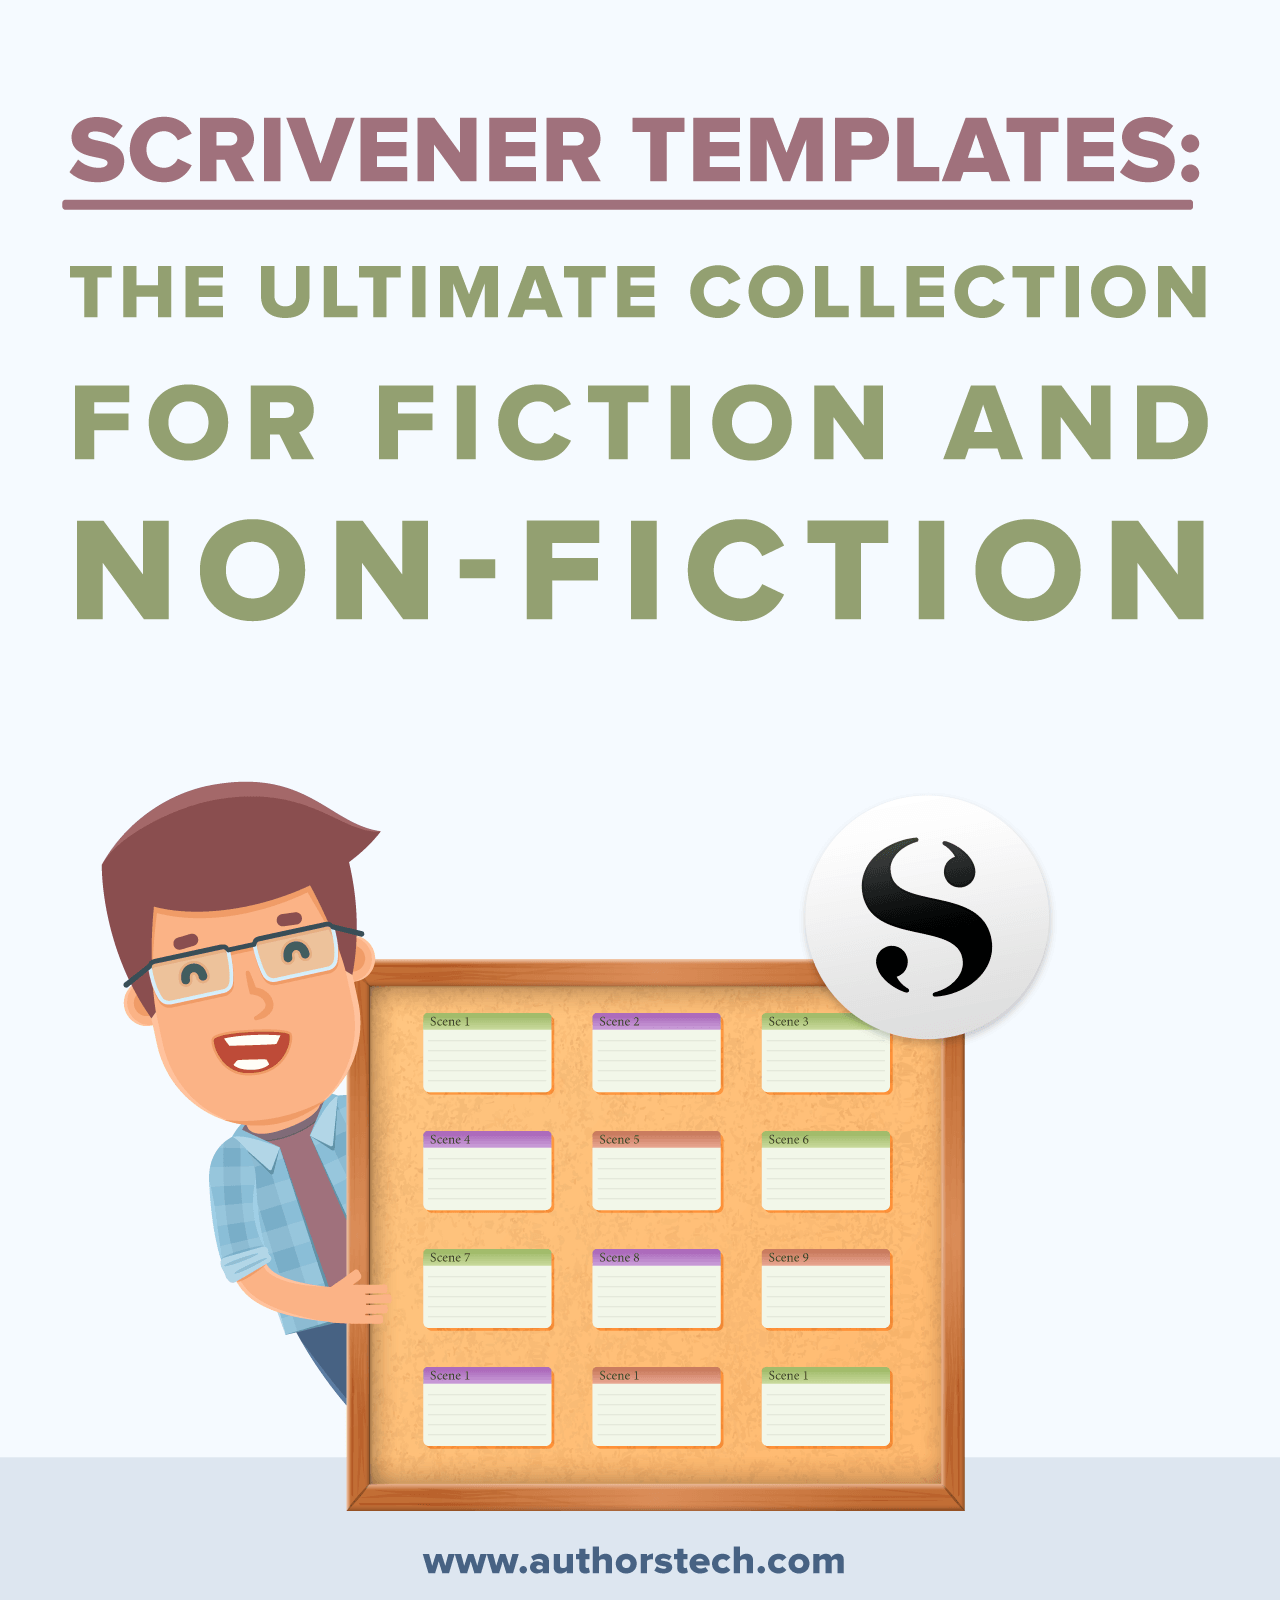 scrivener templates the ultimate collection for fiction and non fiction. Black Bedroom Furniture Sets. Home Design Ideas